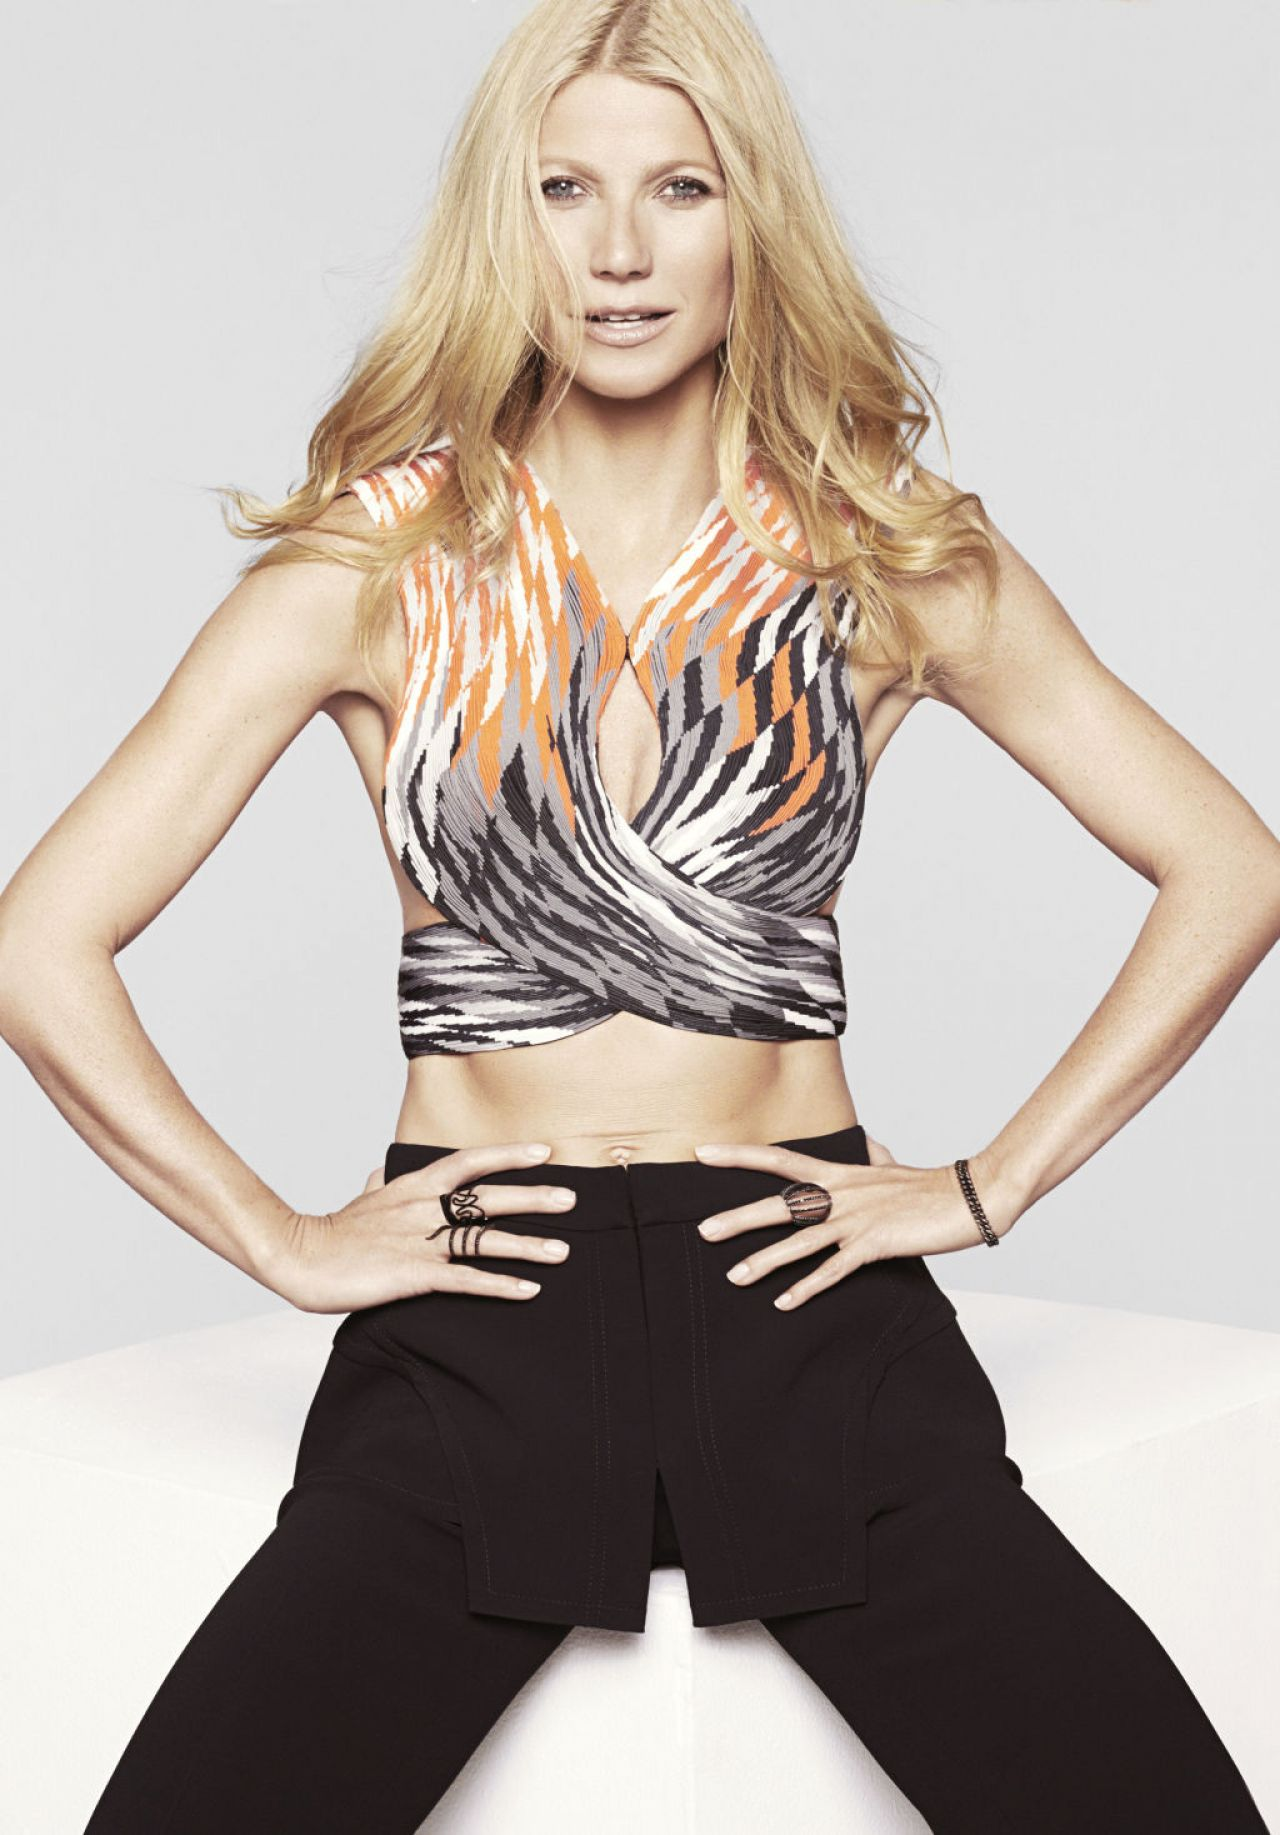 Gwyneth Paltrow - Marie Claire Magazine February 2015 Cover and Pics